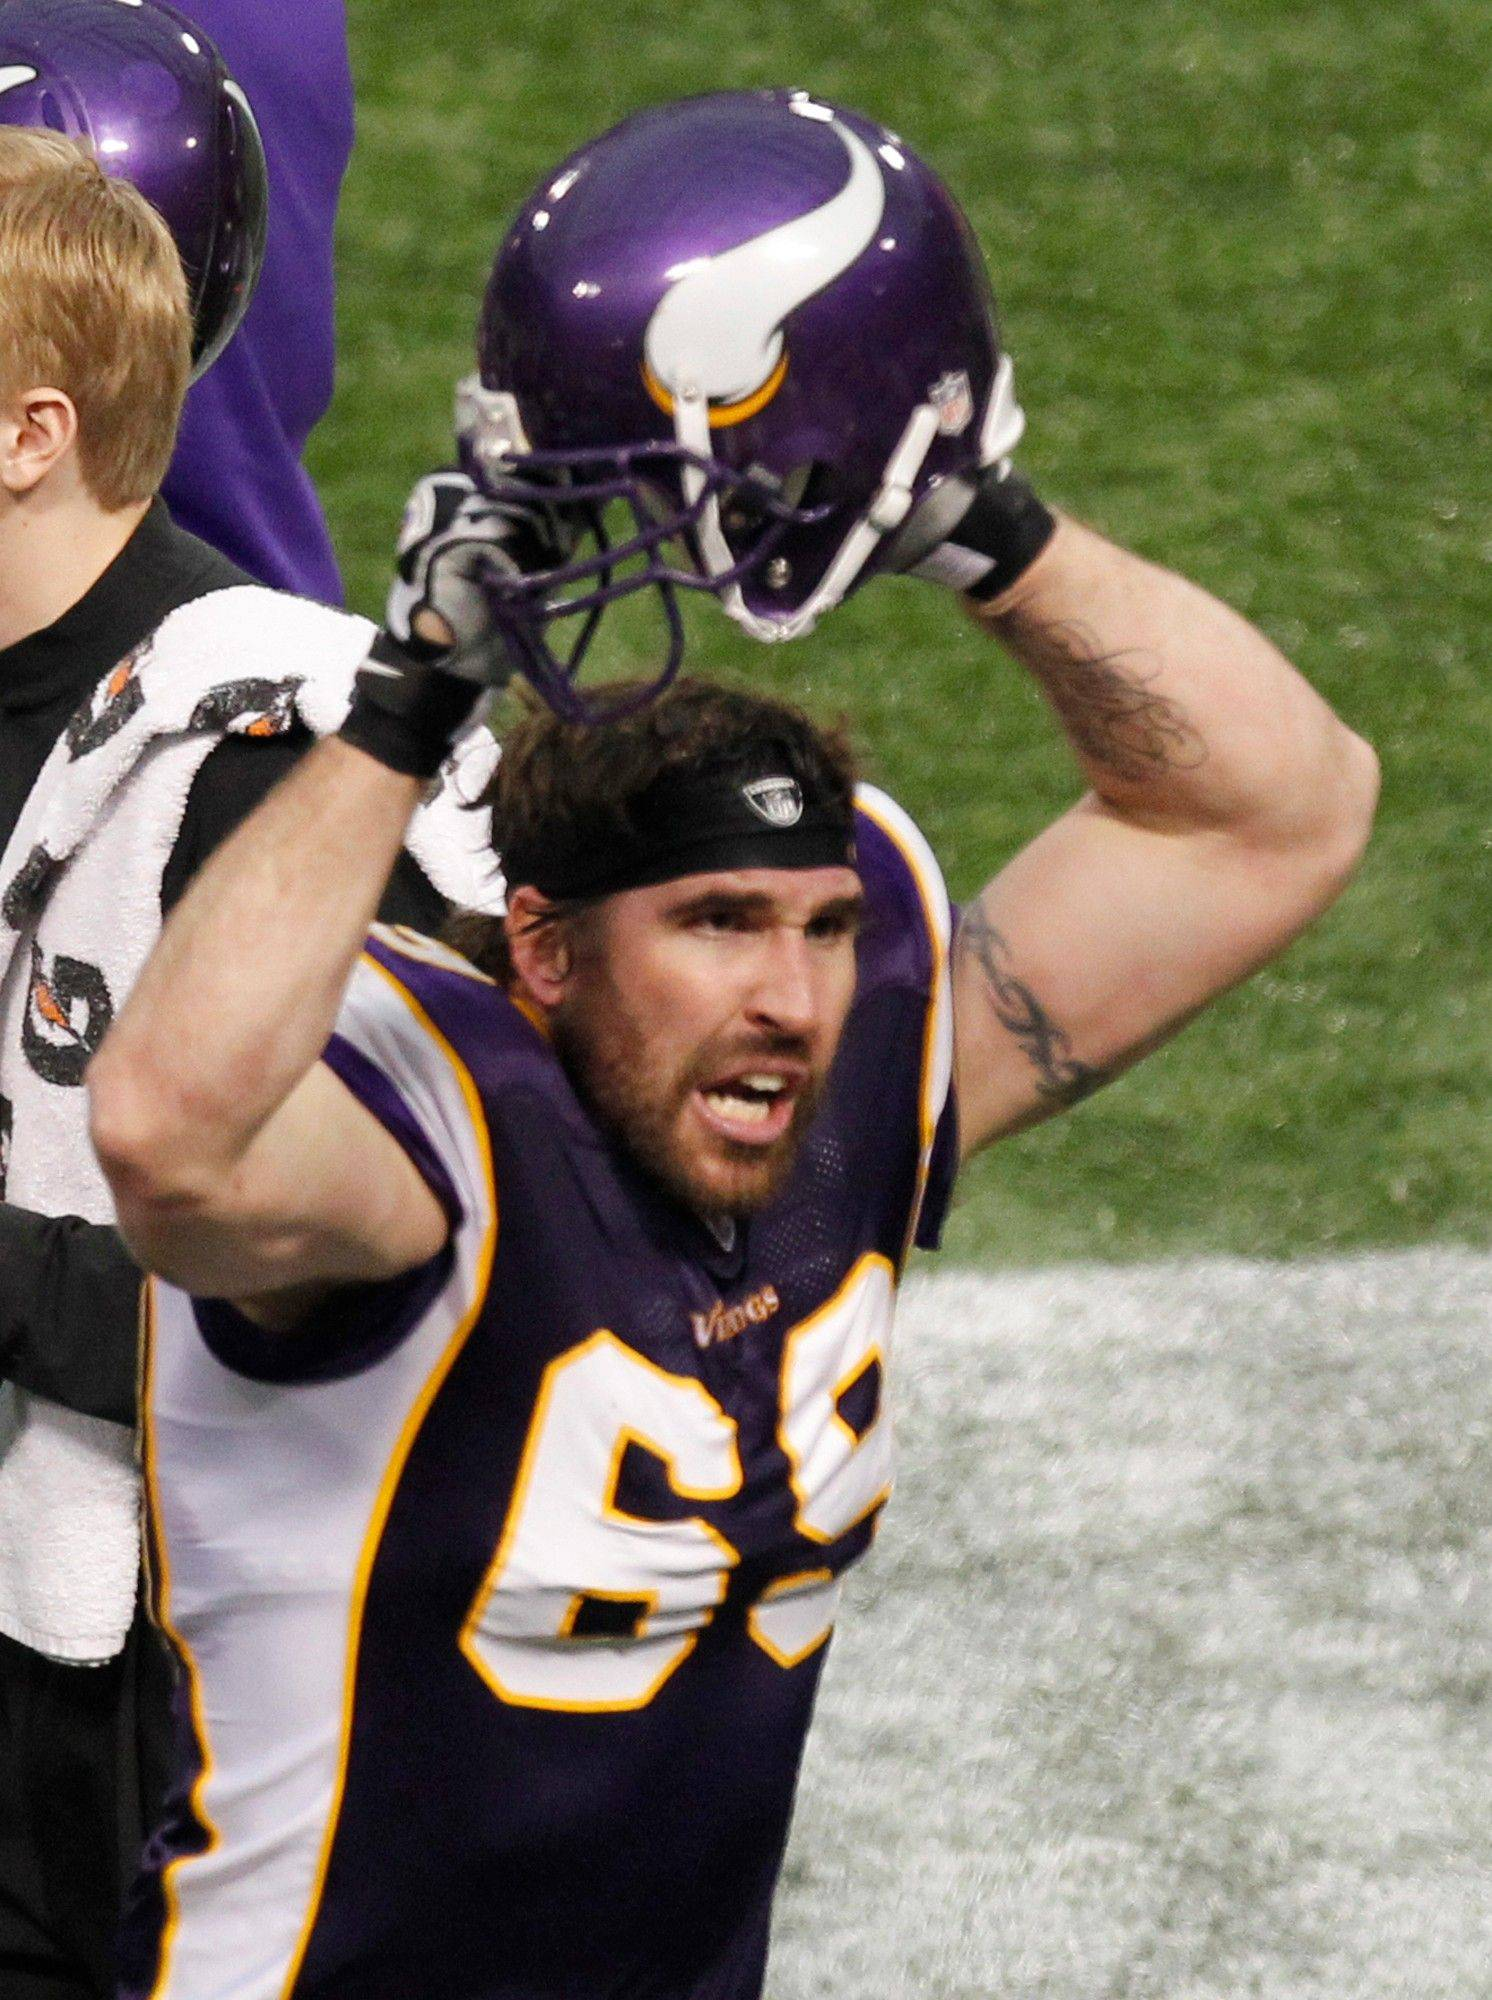 Minnesota Vikings defensive end Jared Allen celebrates on the sideline after sacking Chicago Bears quarterback Josh McCown in the second half. Allen broke the team's single-season sack record of 21.5 on the play, set by Chris Doleman in 1989.